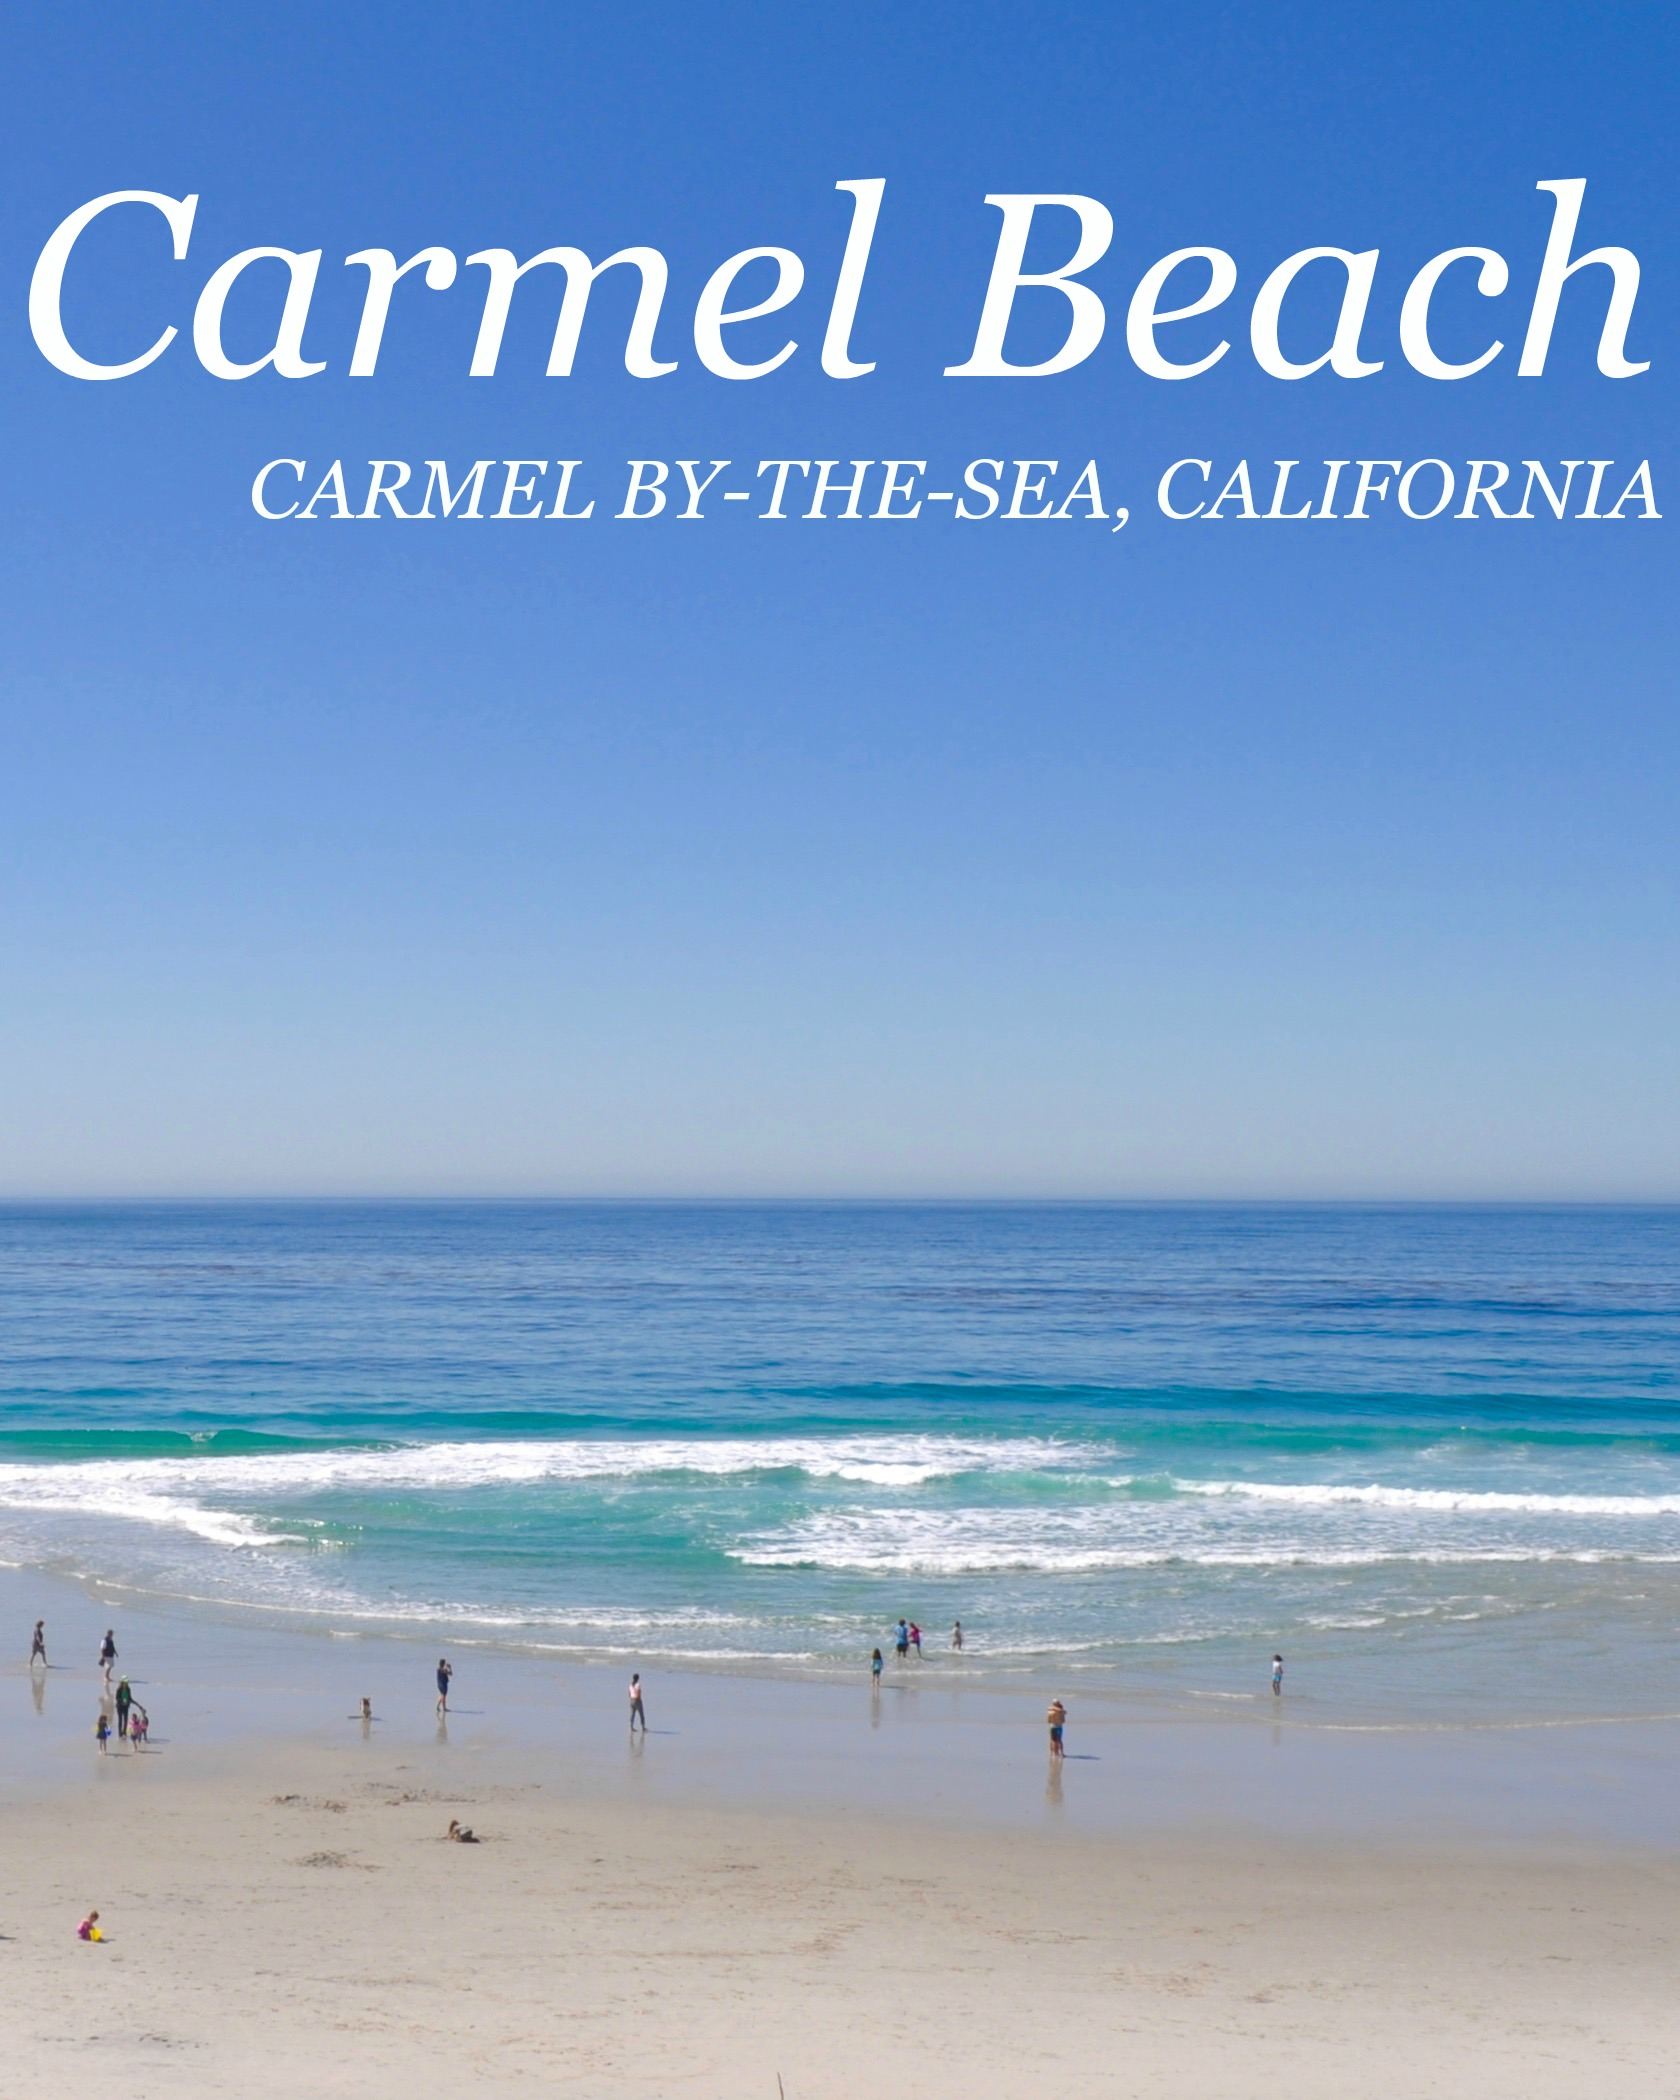 Carmel Beach – Carmel By The Sea